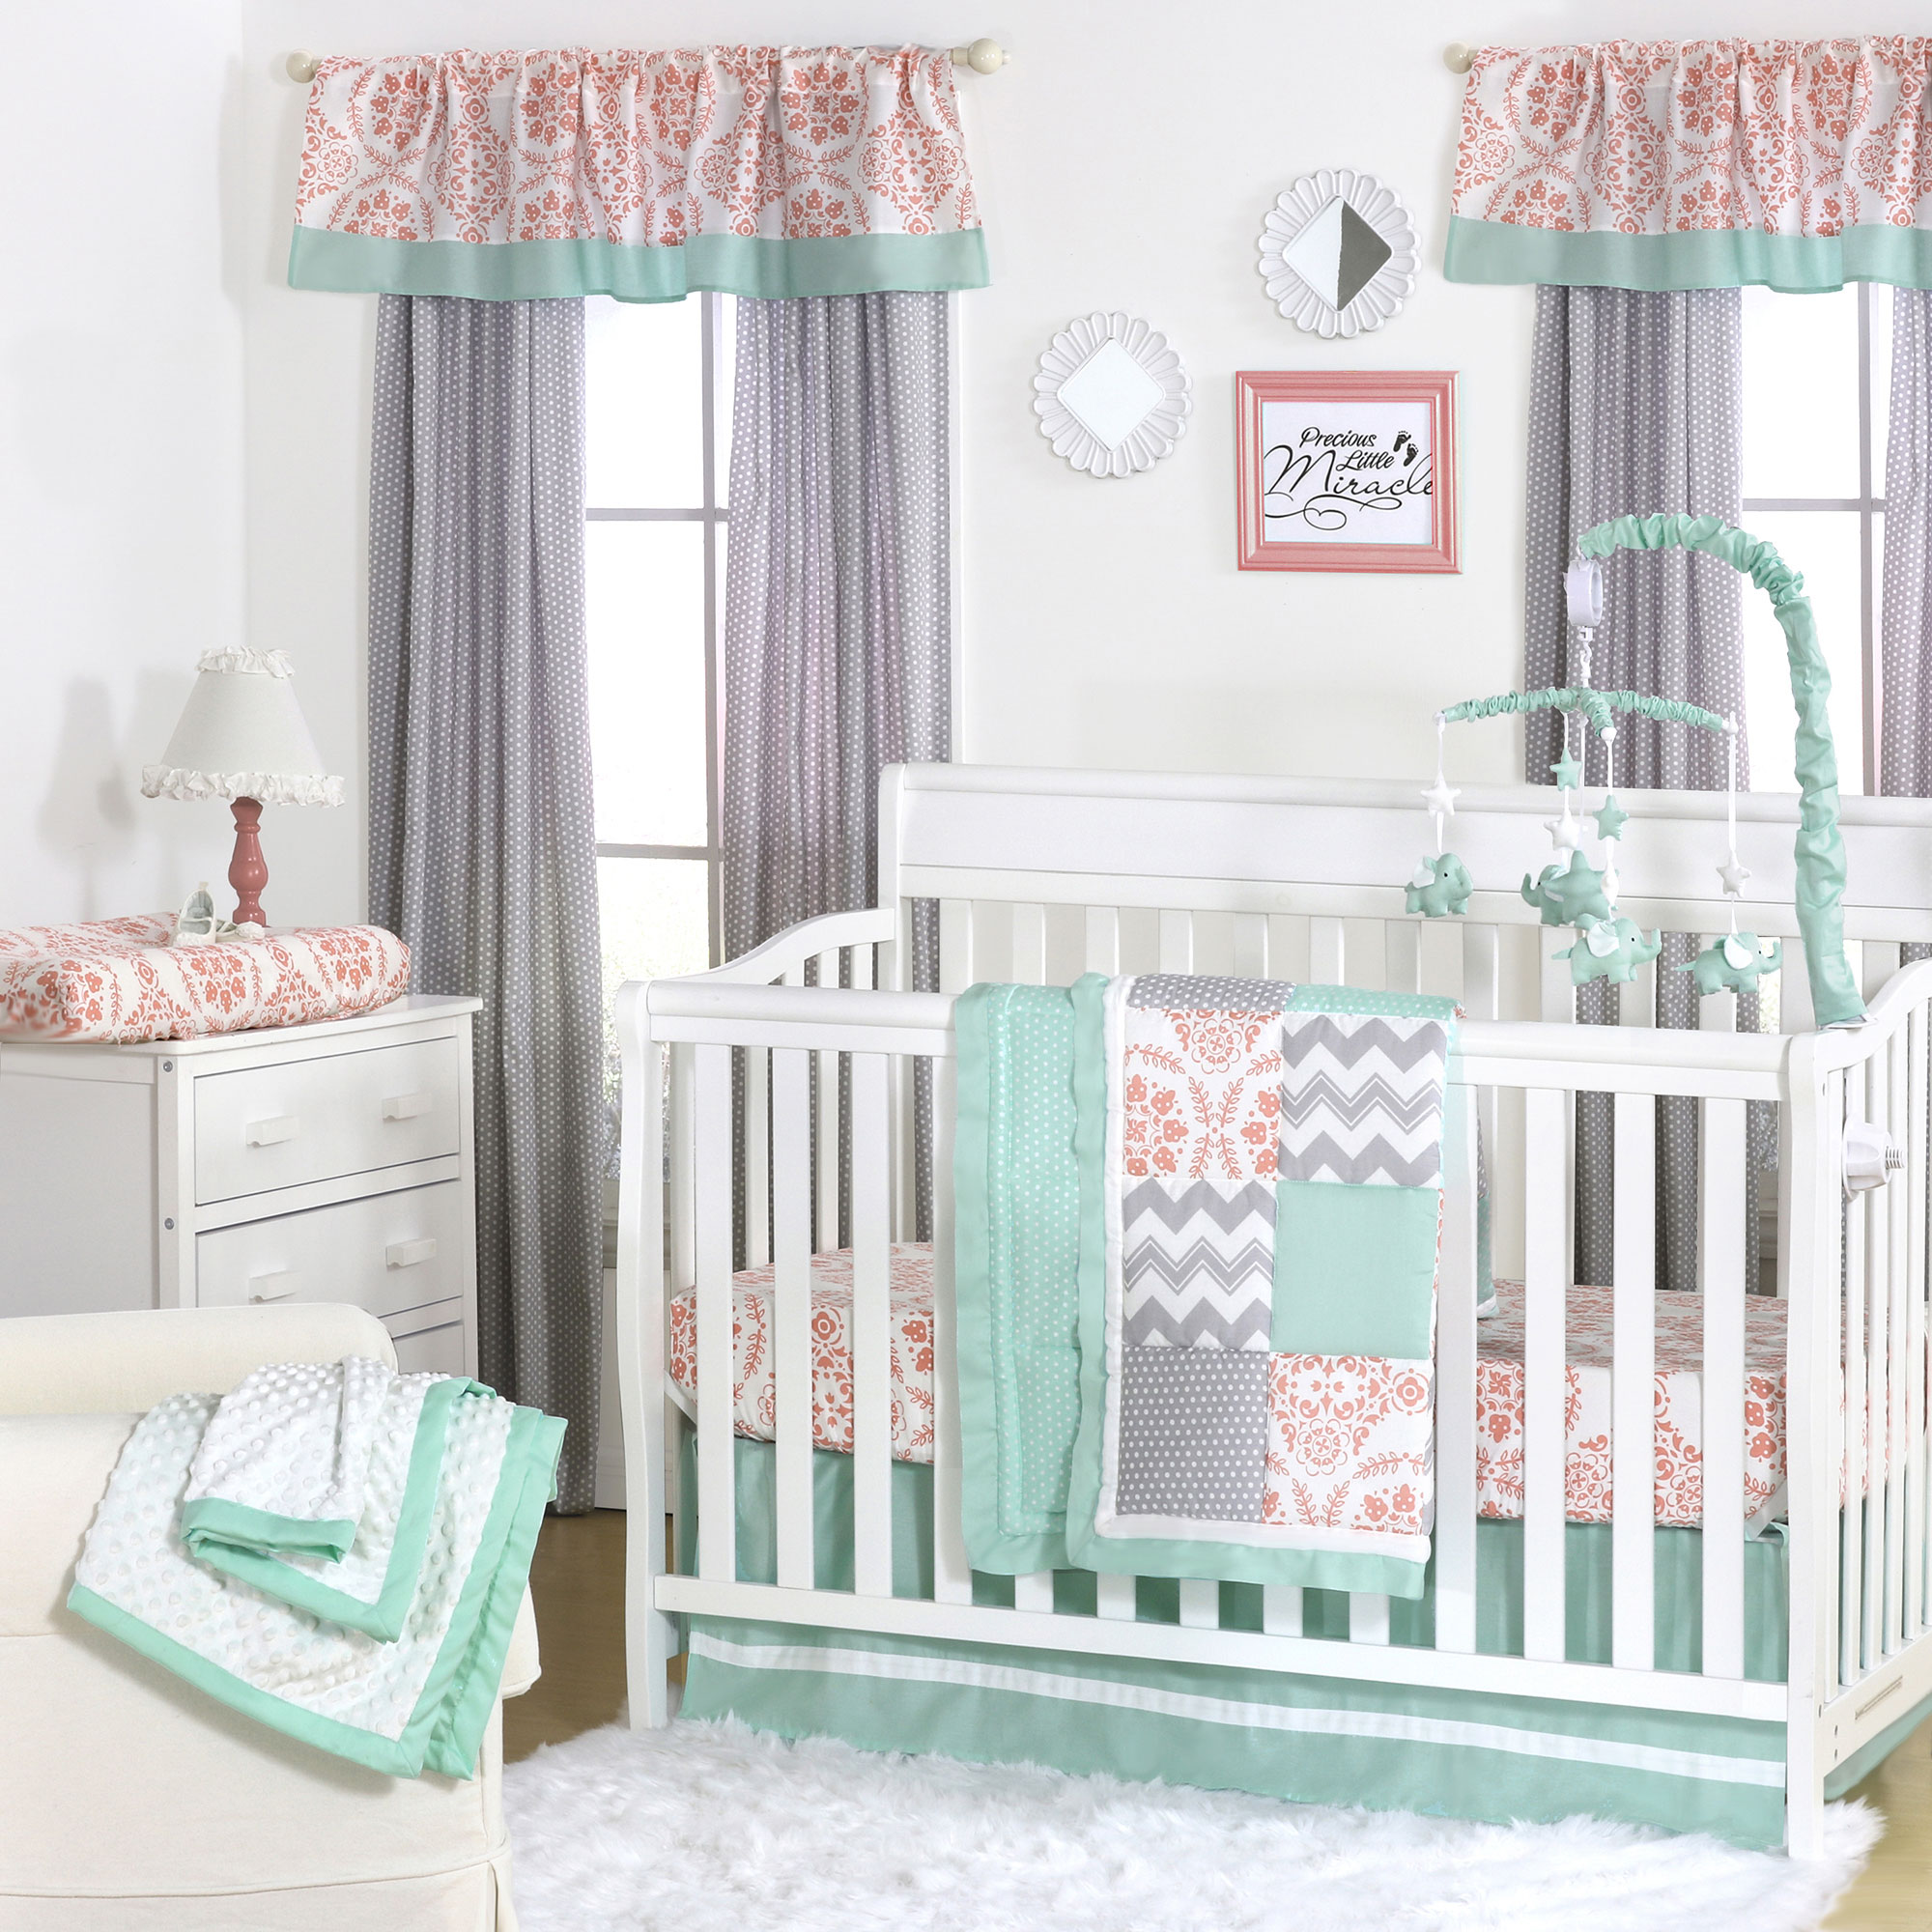 Image of: Green Baby Furniture To The Peanut Shell Piece Baby Crib Bedding Set Mint Green Coral And Grey